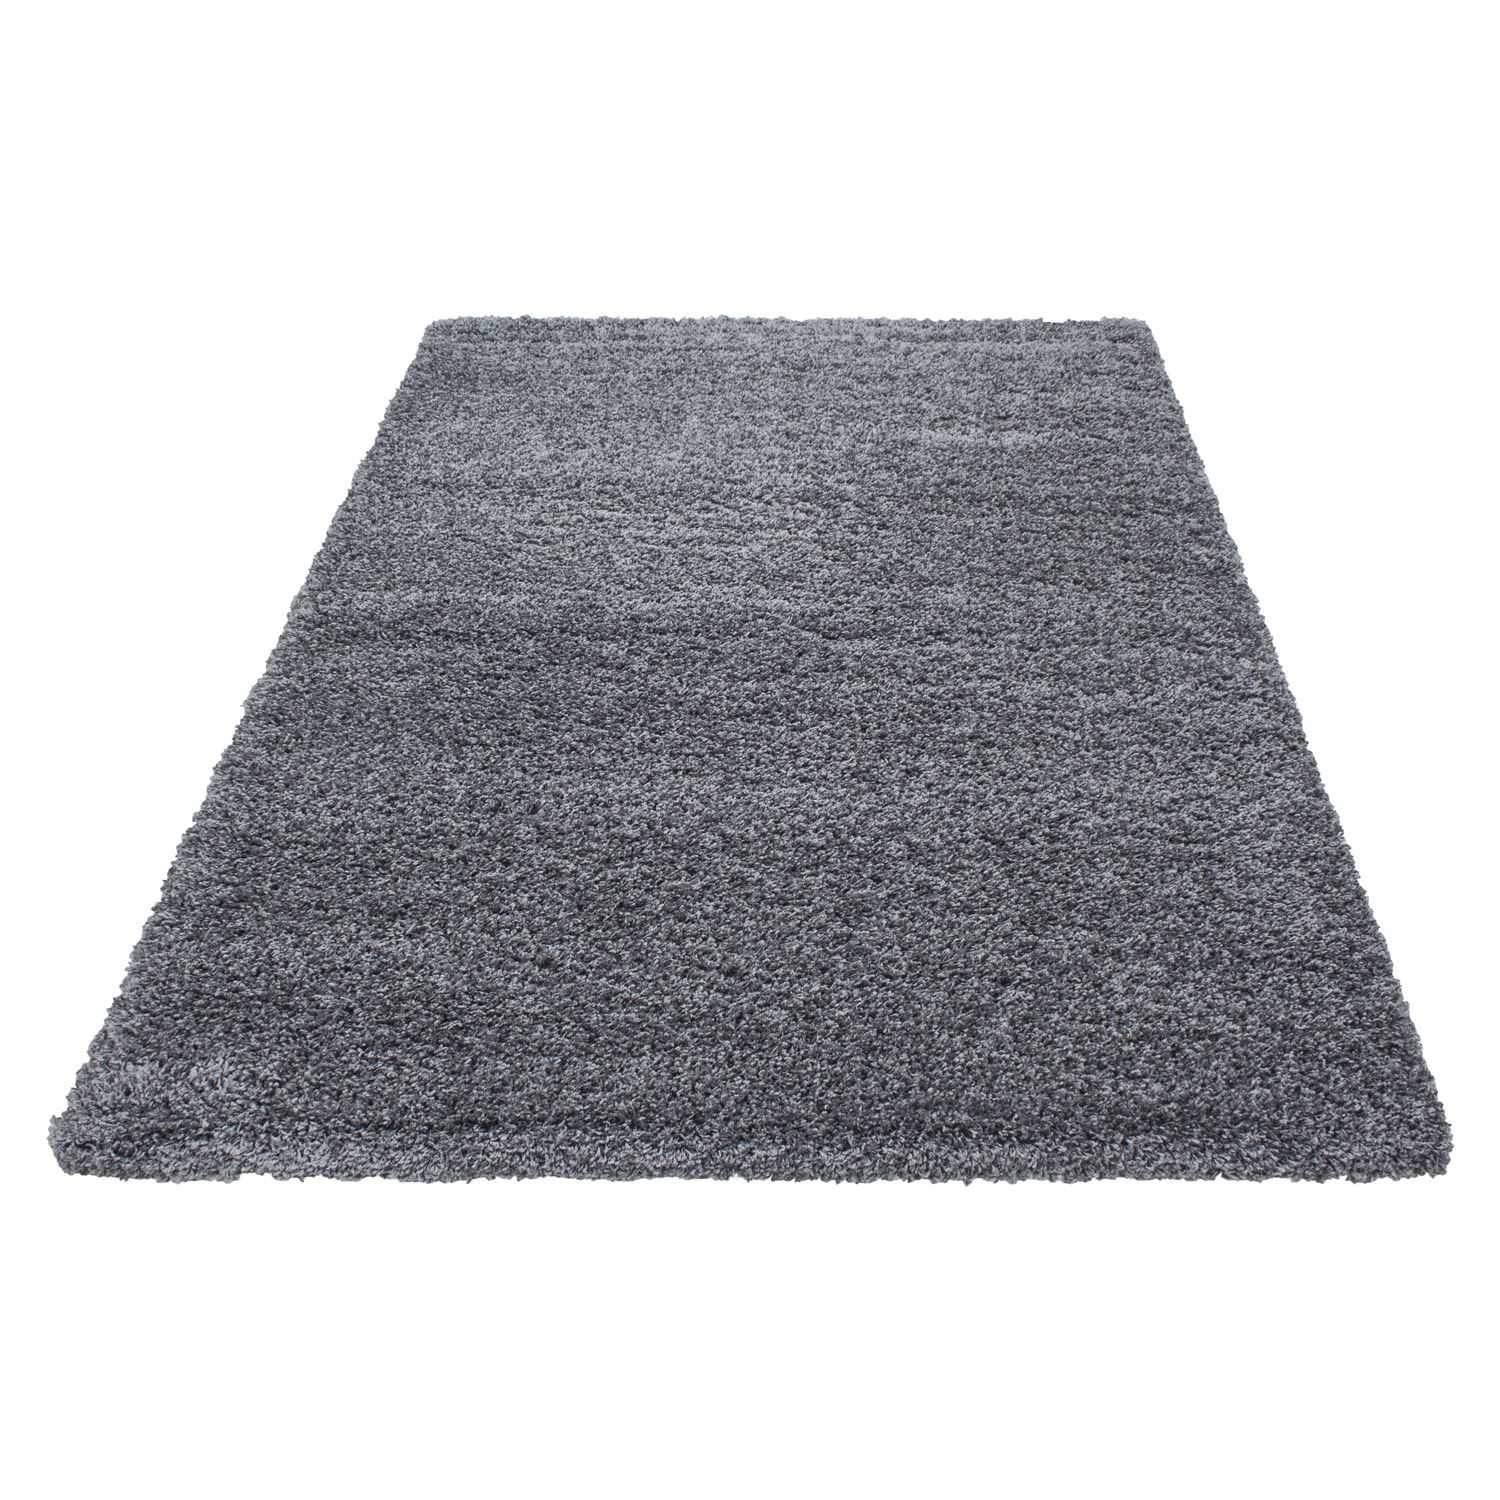 Black And White Extra Large Rug: 5cm Thick Soft Touch Shaggy Shag Pile Rugs Round Runner